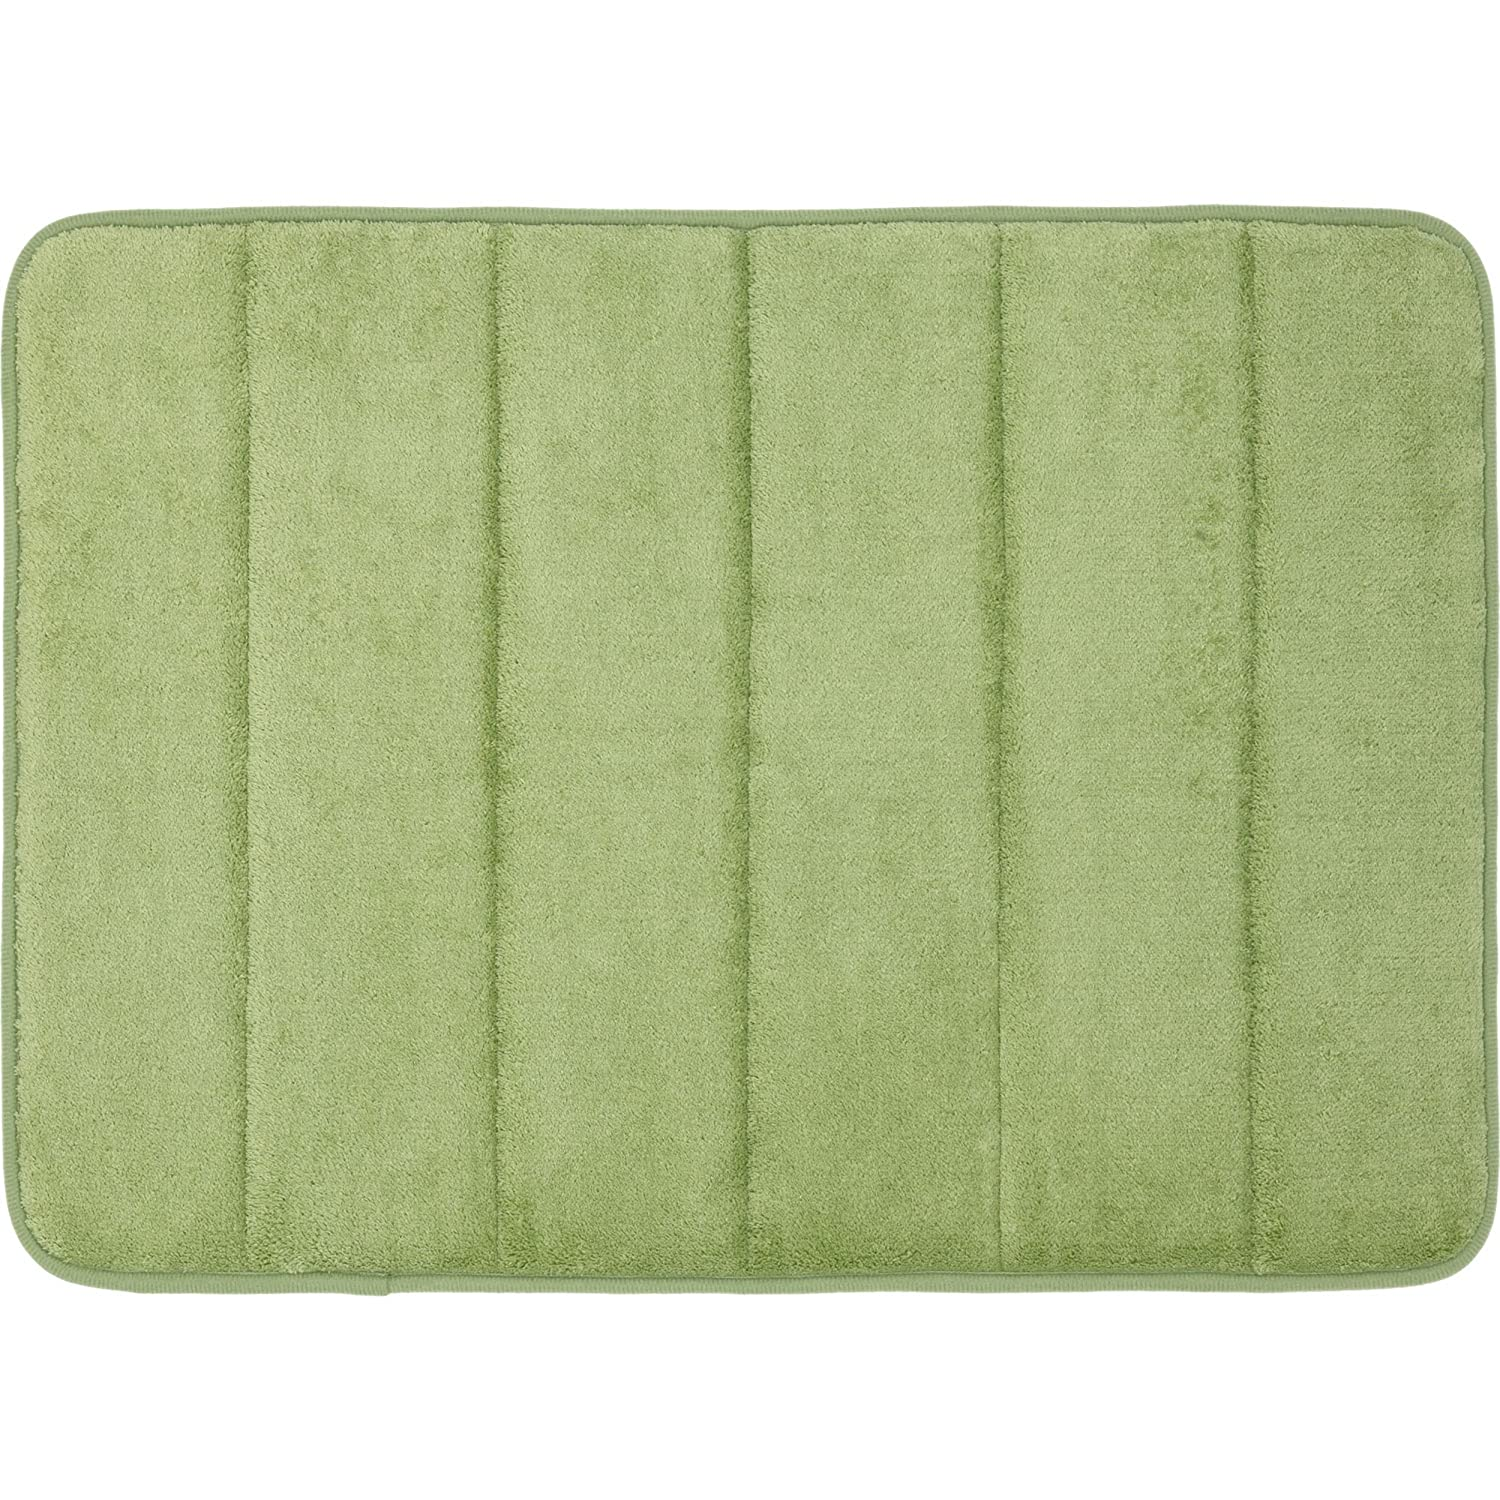 Amazoncom Mohawk Home Memory Foam Bath Rug Inch By Inch - Sage bath rug for bathroom decorating ideas